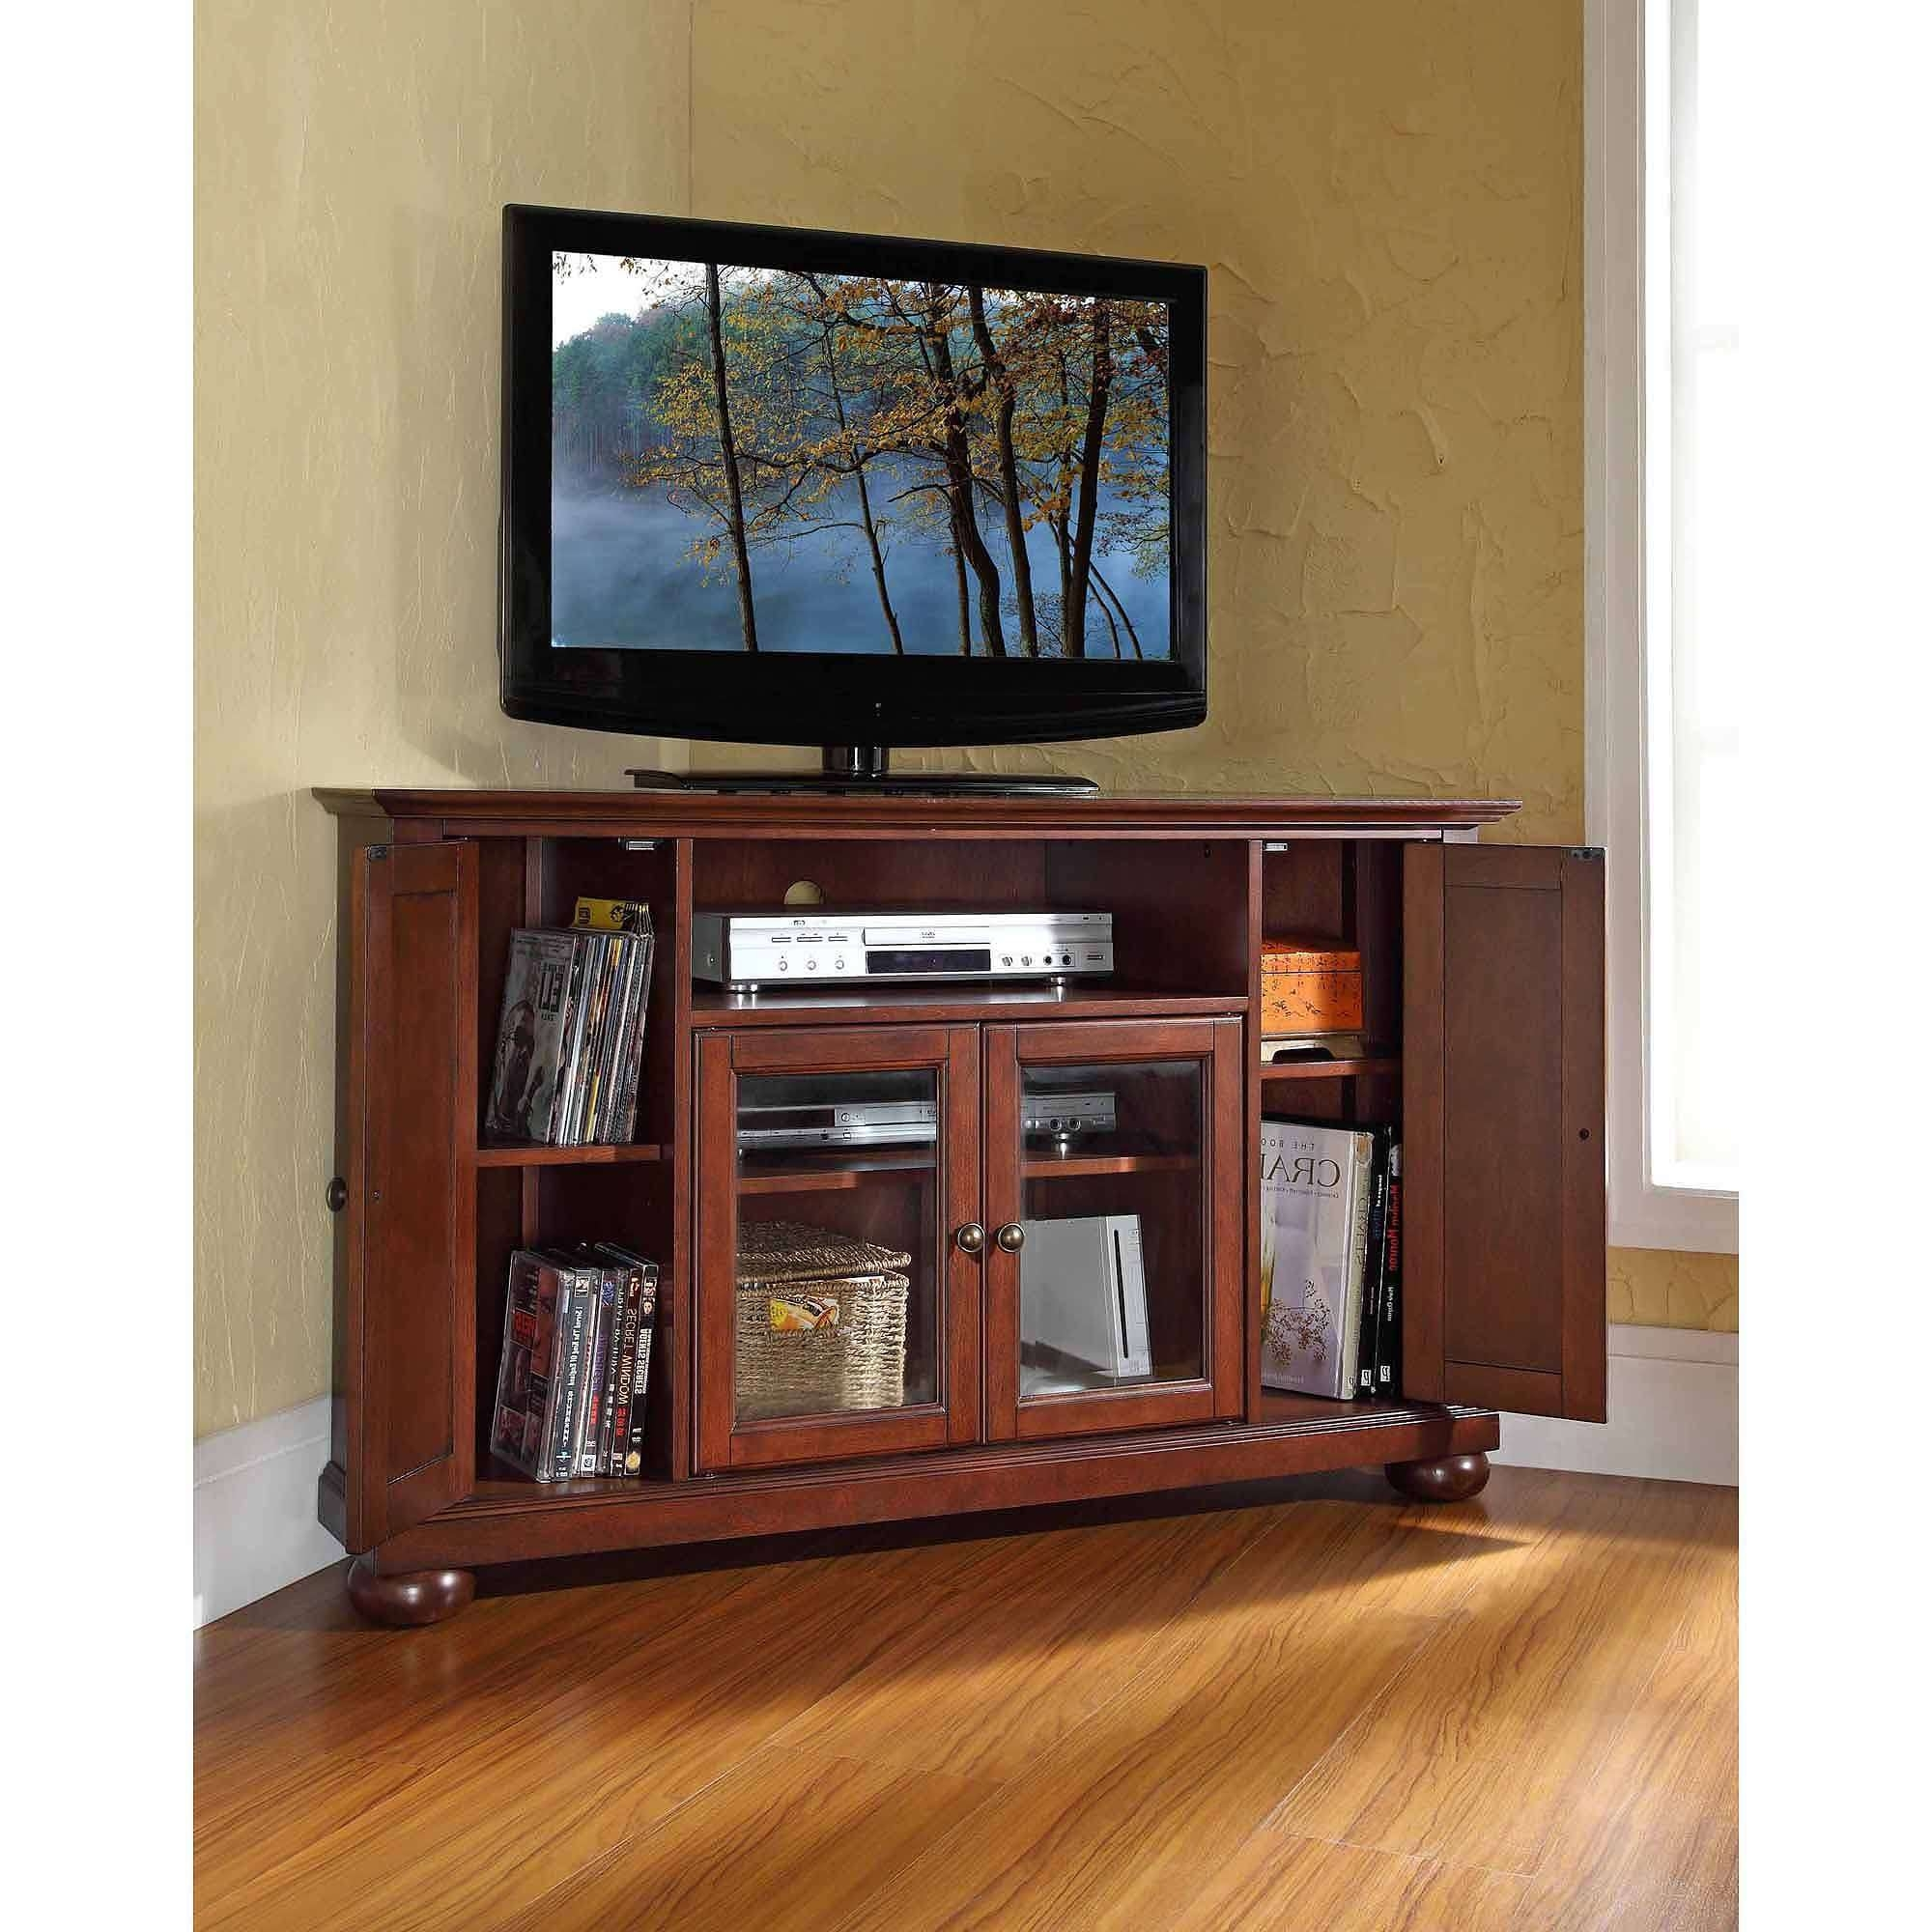 Tv Stand : Stirring Corner Tv Stand For Inch Photo Concept Flat In Corner Tv Stands For 55 Inch Tv (View 6 of 15)